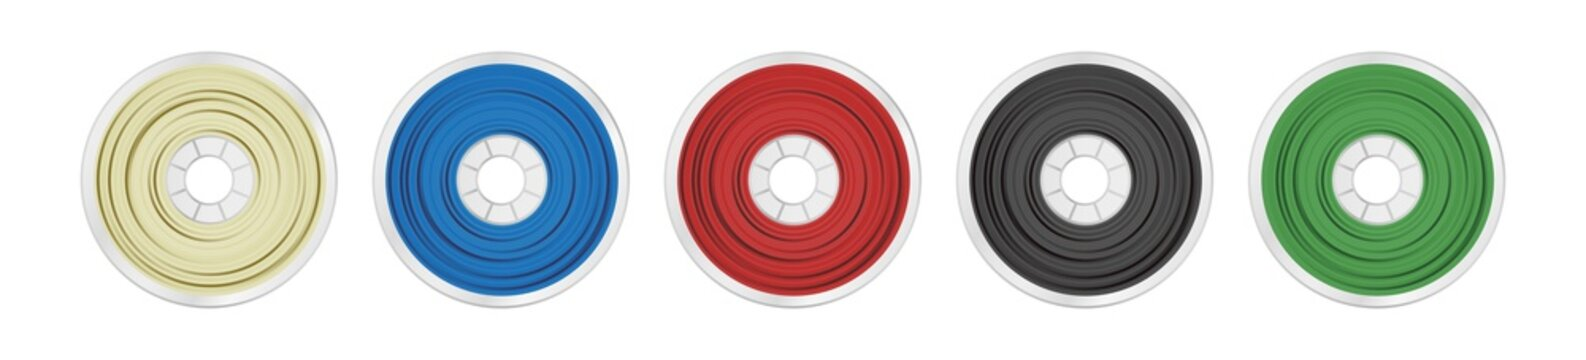 Vector set of five filaments for 3D printing wounded on the spool. Plastic material pla, abs, petg, pc or asa in several color variants – natural white, blue, red, black and green isolated on white.